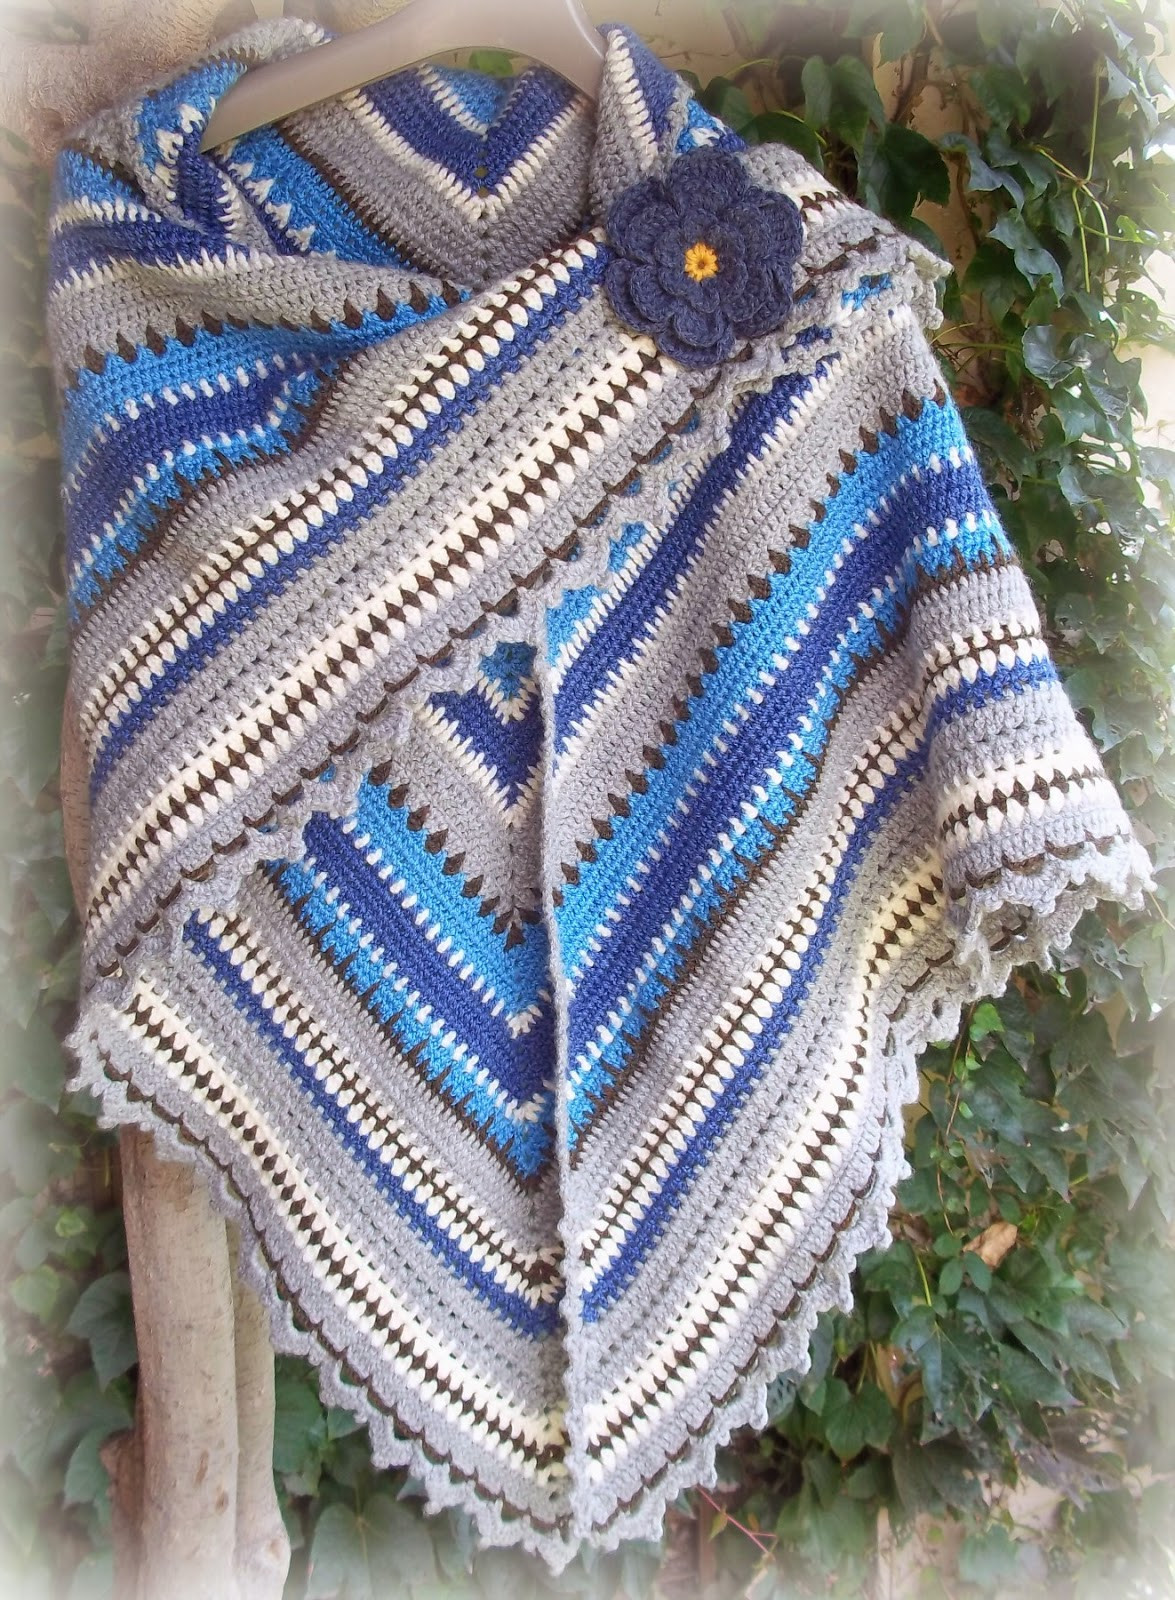 Triangle Shawl Pattern Unique Zooty Owl S Crafty Blog Triangle Shawl forever In Blue Jeans Of Awesome 47 Photos Triangle Shawl Pattern